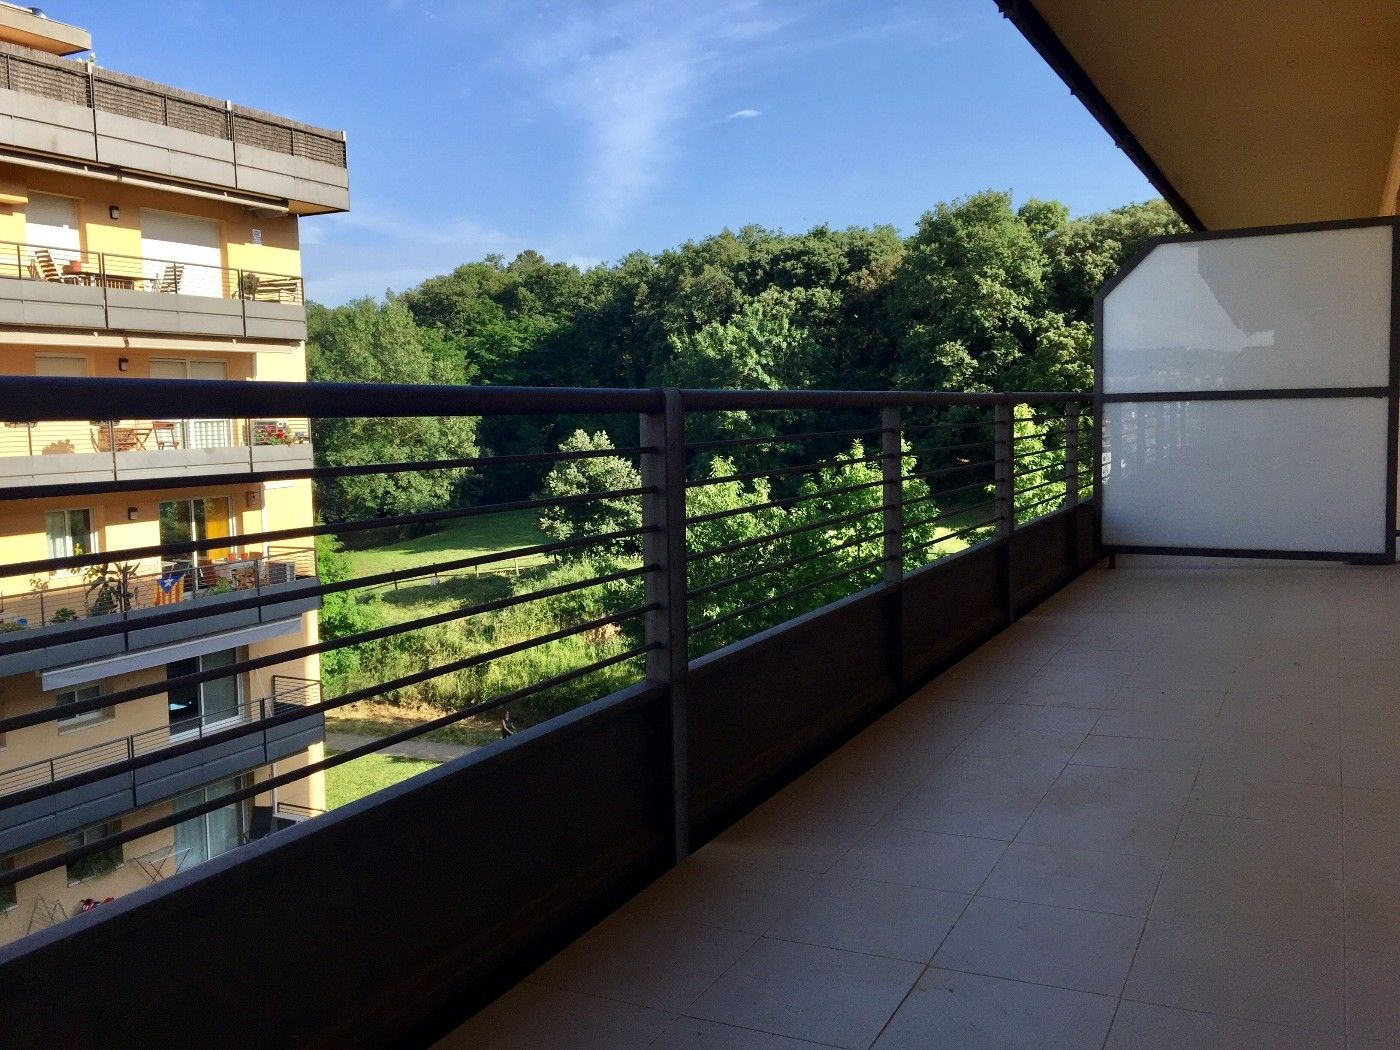 Rent Flat in Carrer riera buganto, 7. Piso alquiler pericot